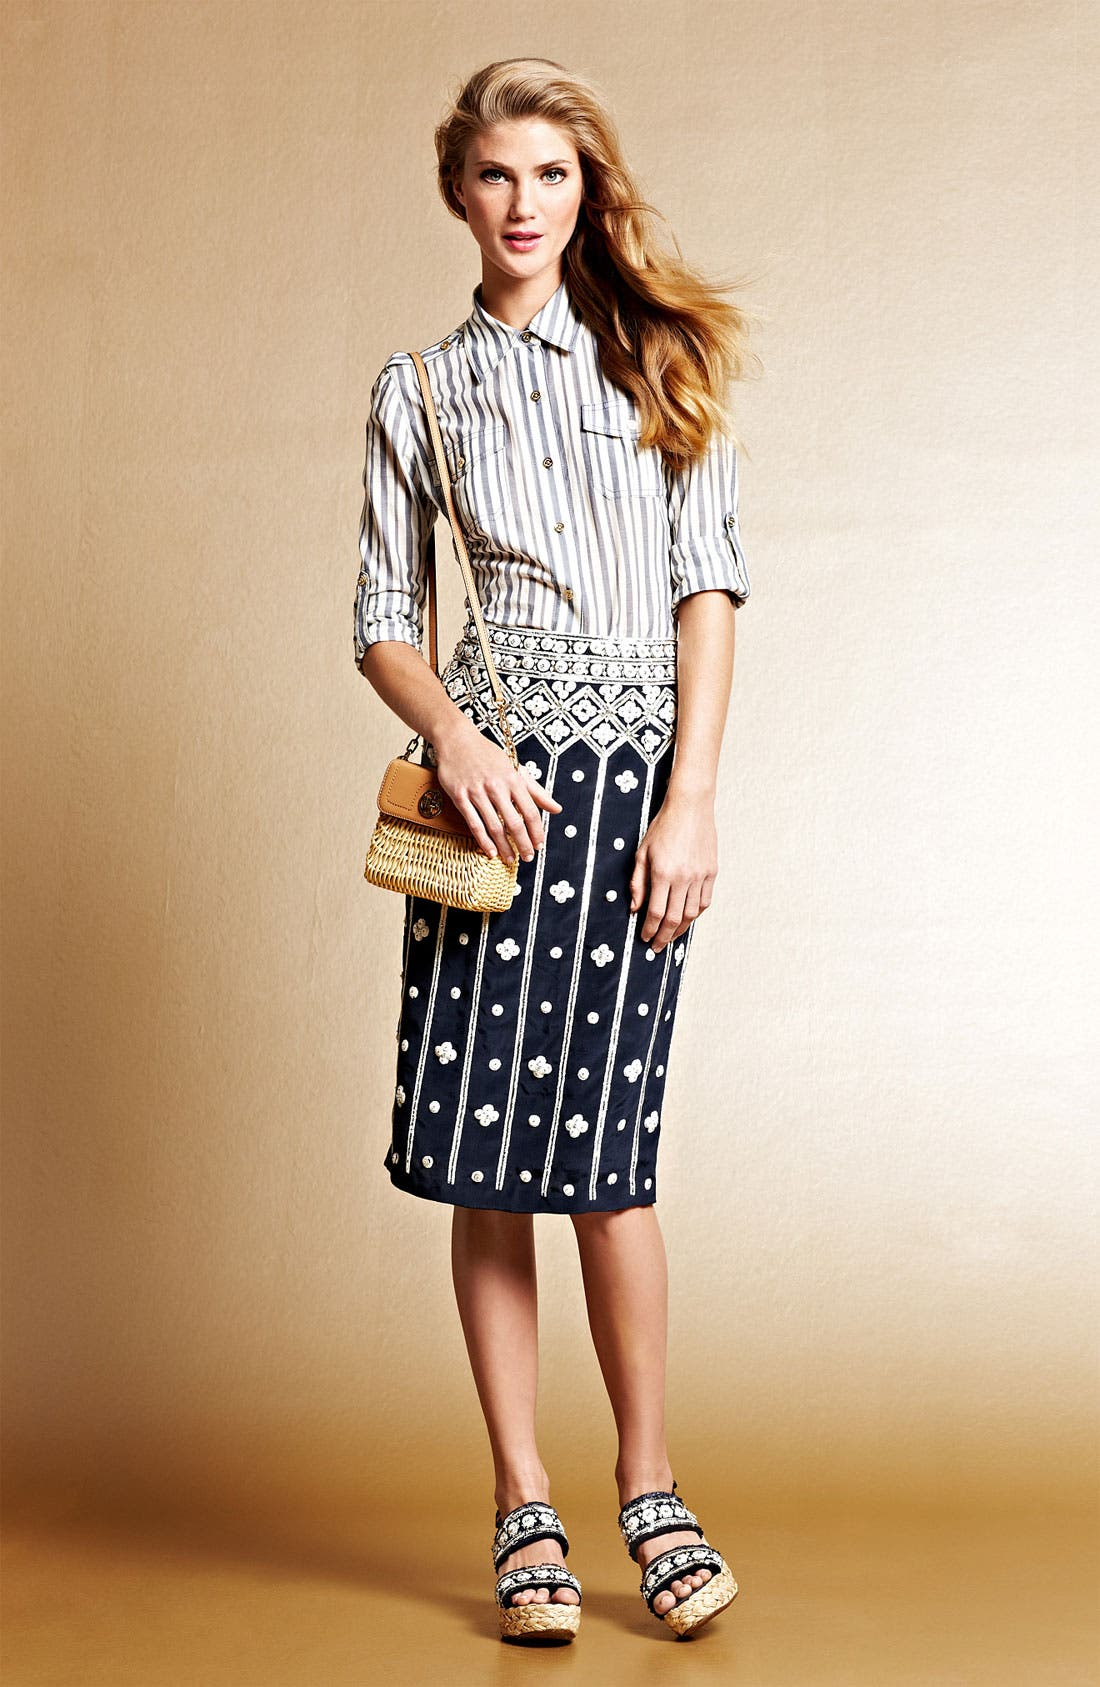 Alternate Image 1 Selected - Tory Burch Shirt & Sequin Skirt